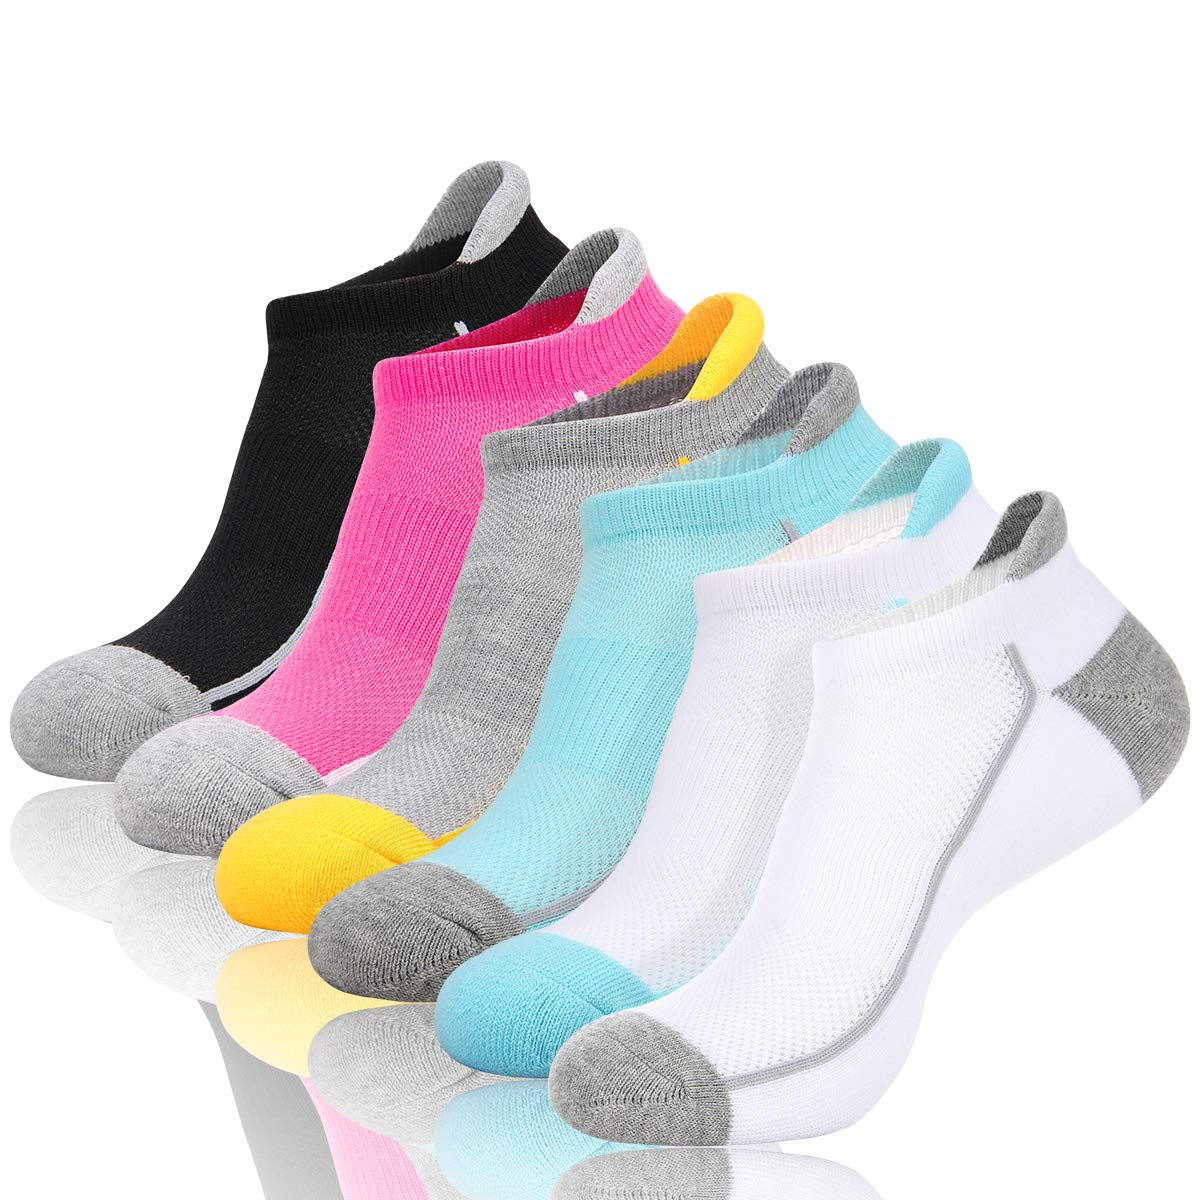 Eallco Womens Low Cut Ankle Athletic Socks Cushioned Breathable Comfort Running Tab Sock With Arch Support 6 Pack